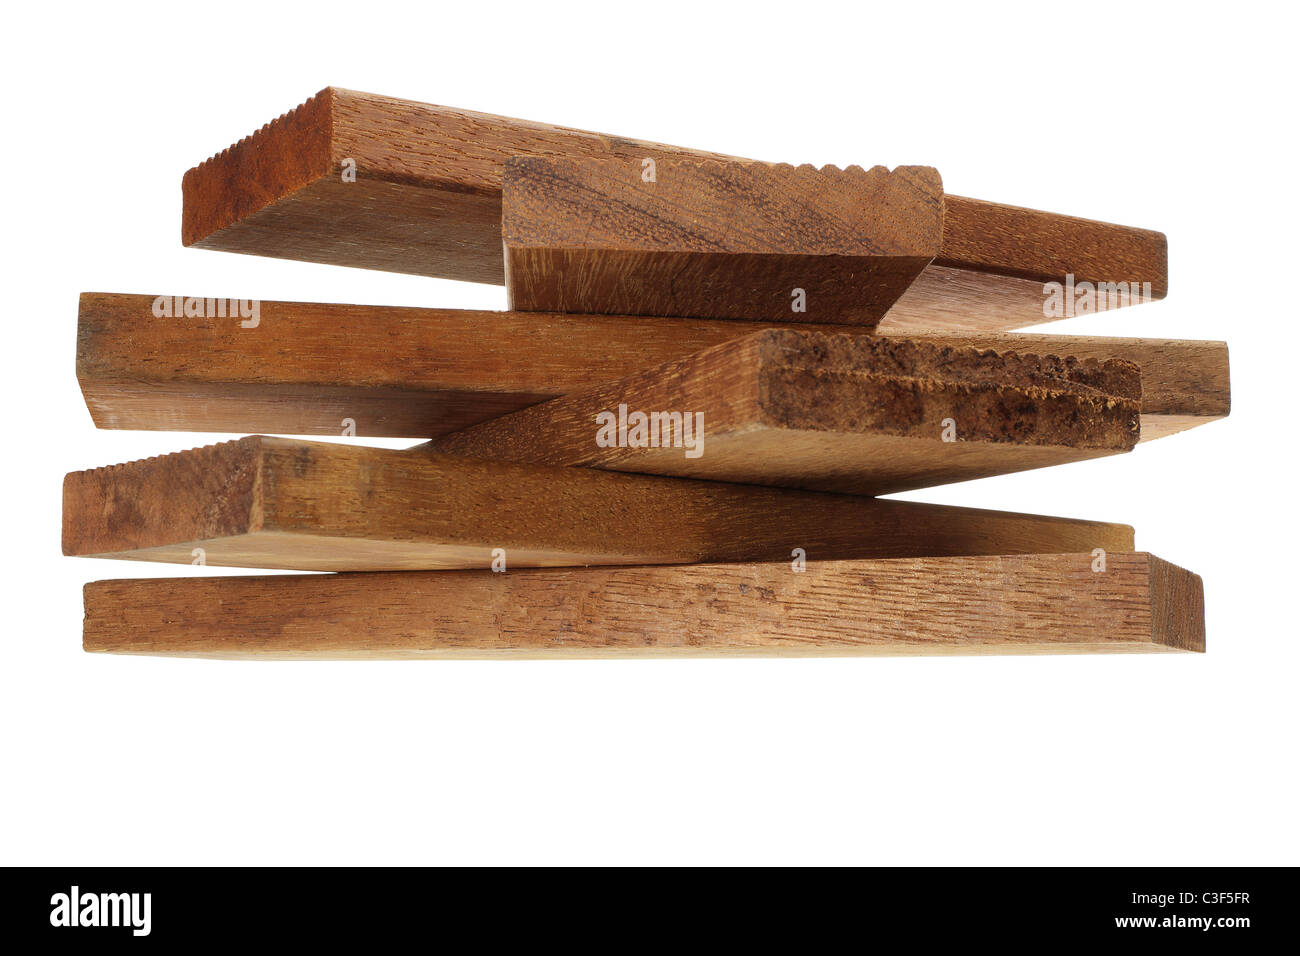 Stack of Wooden Planks - Stock Image